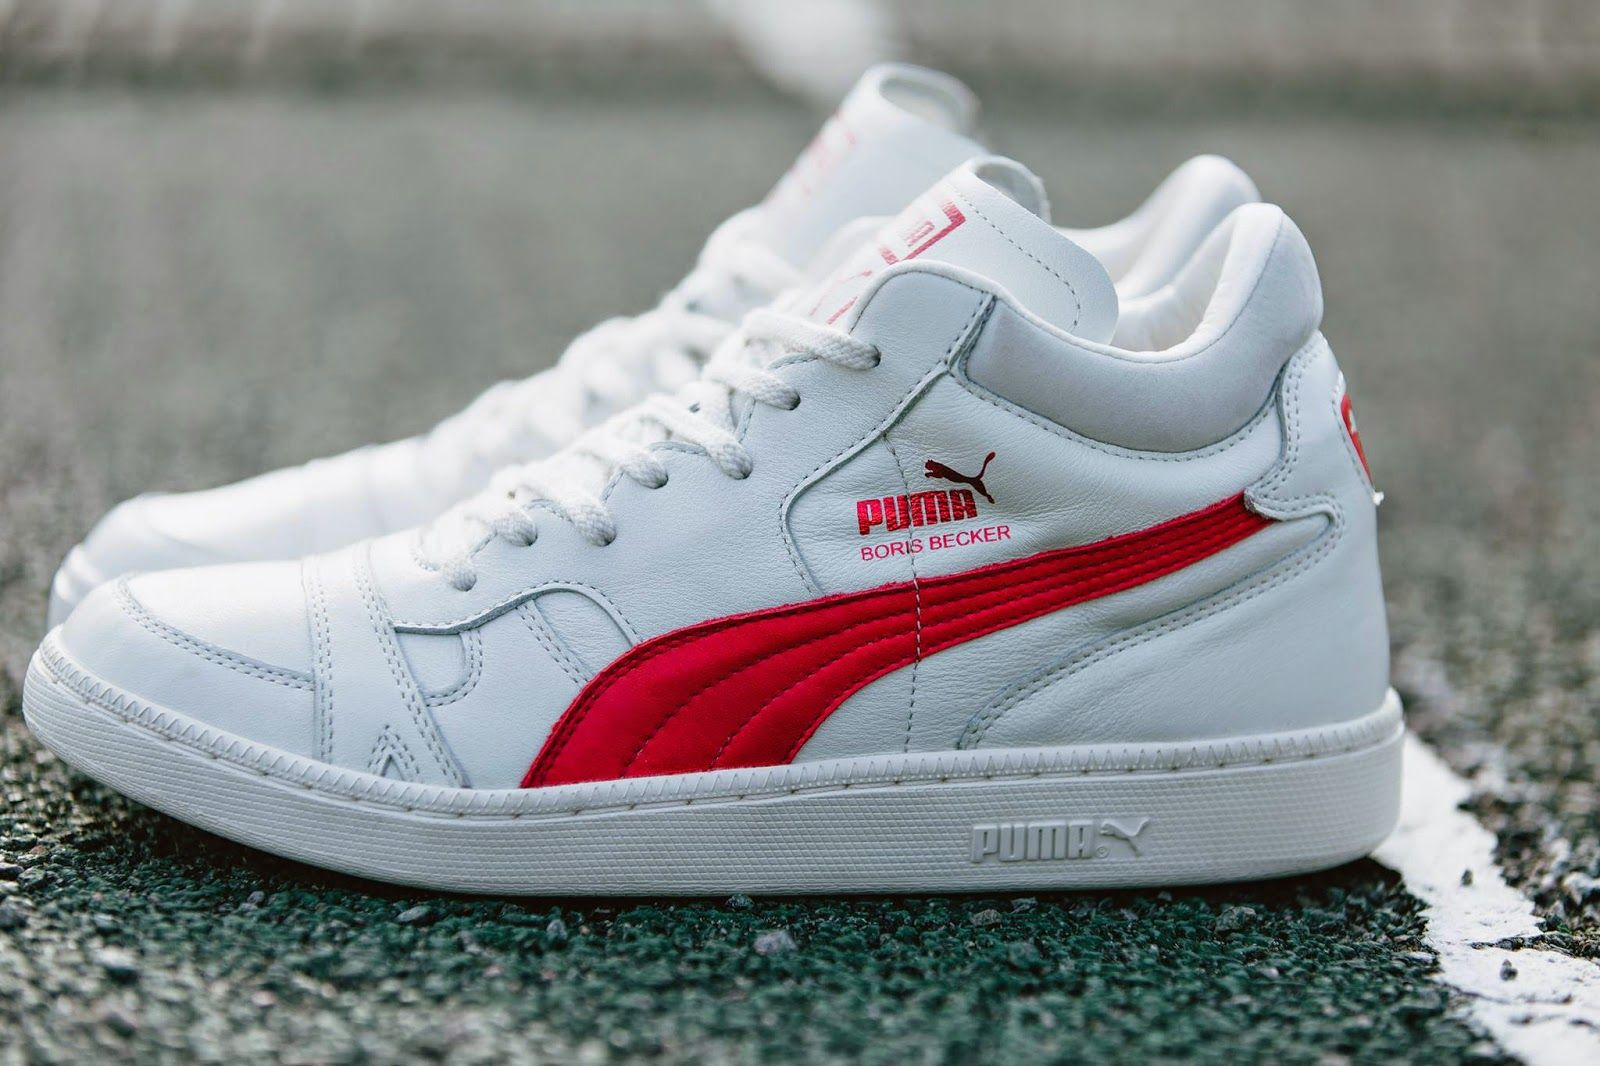 on sale online autumn shoes real quality Puma Boris Becker OG | Kicks shoes, Sneakers, Nike shoes for ...